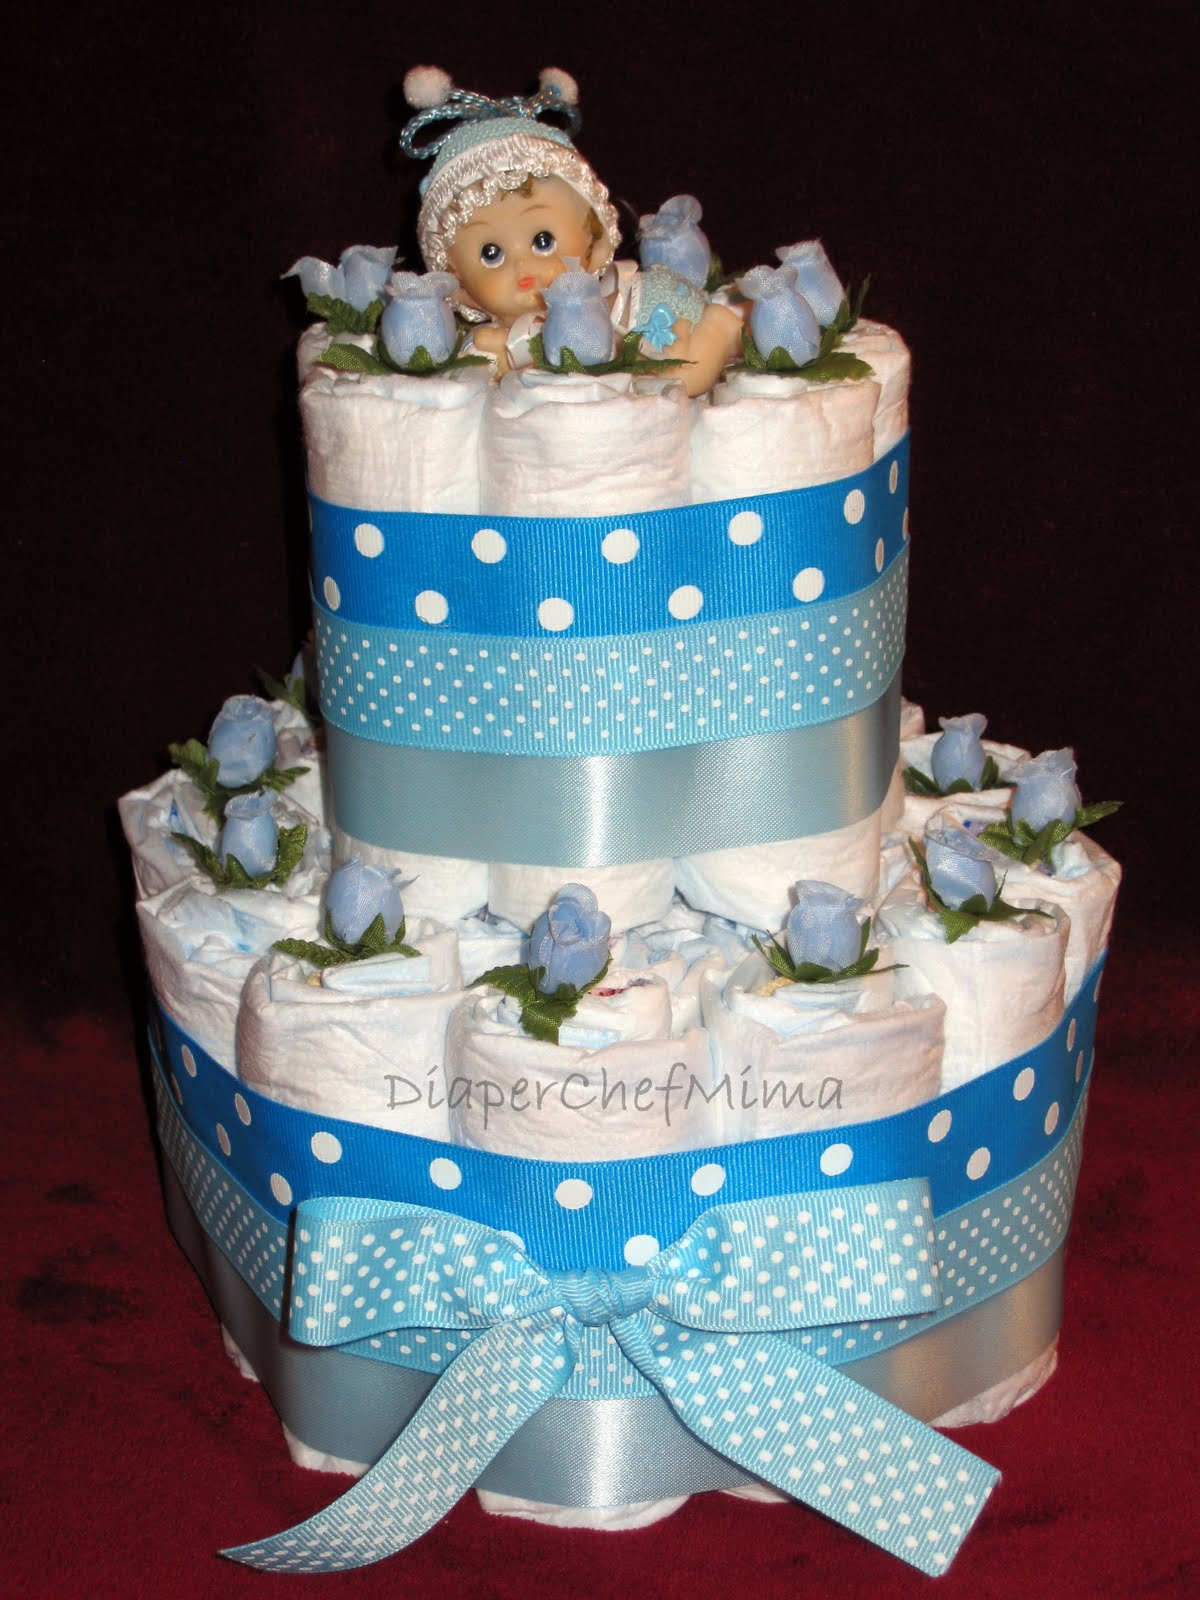 Diaper Chef Mima: Baby Shower Diaper Cake Centerpieces